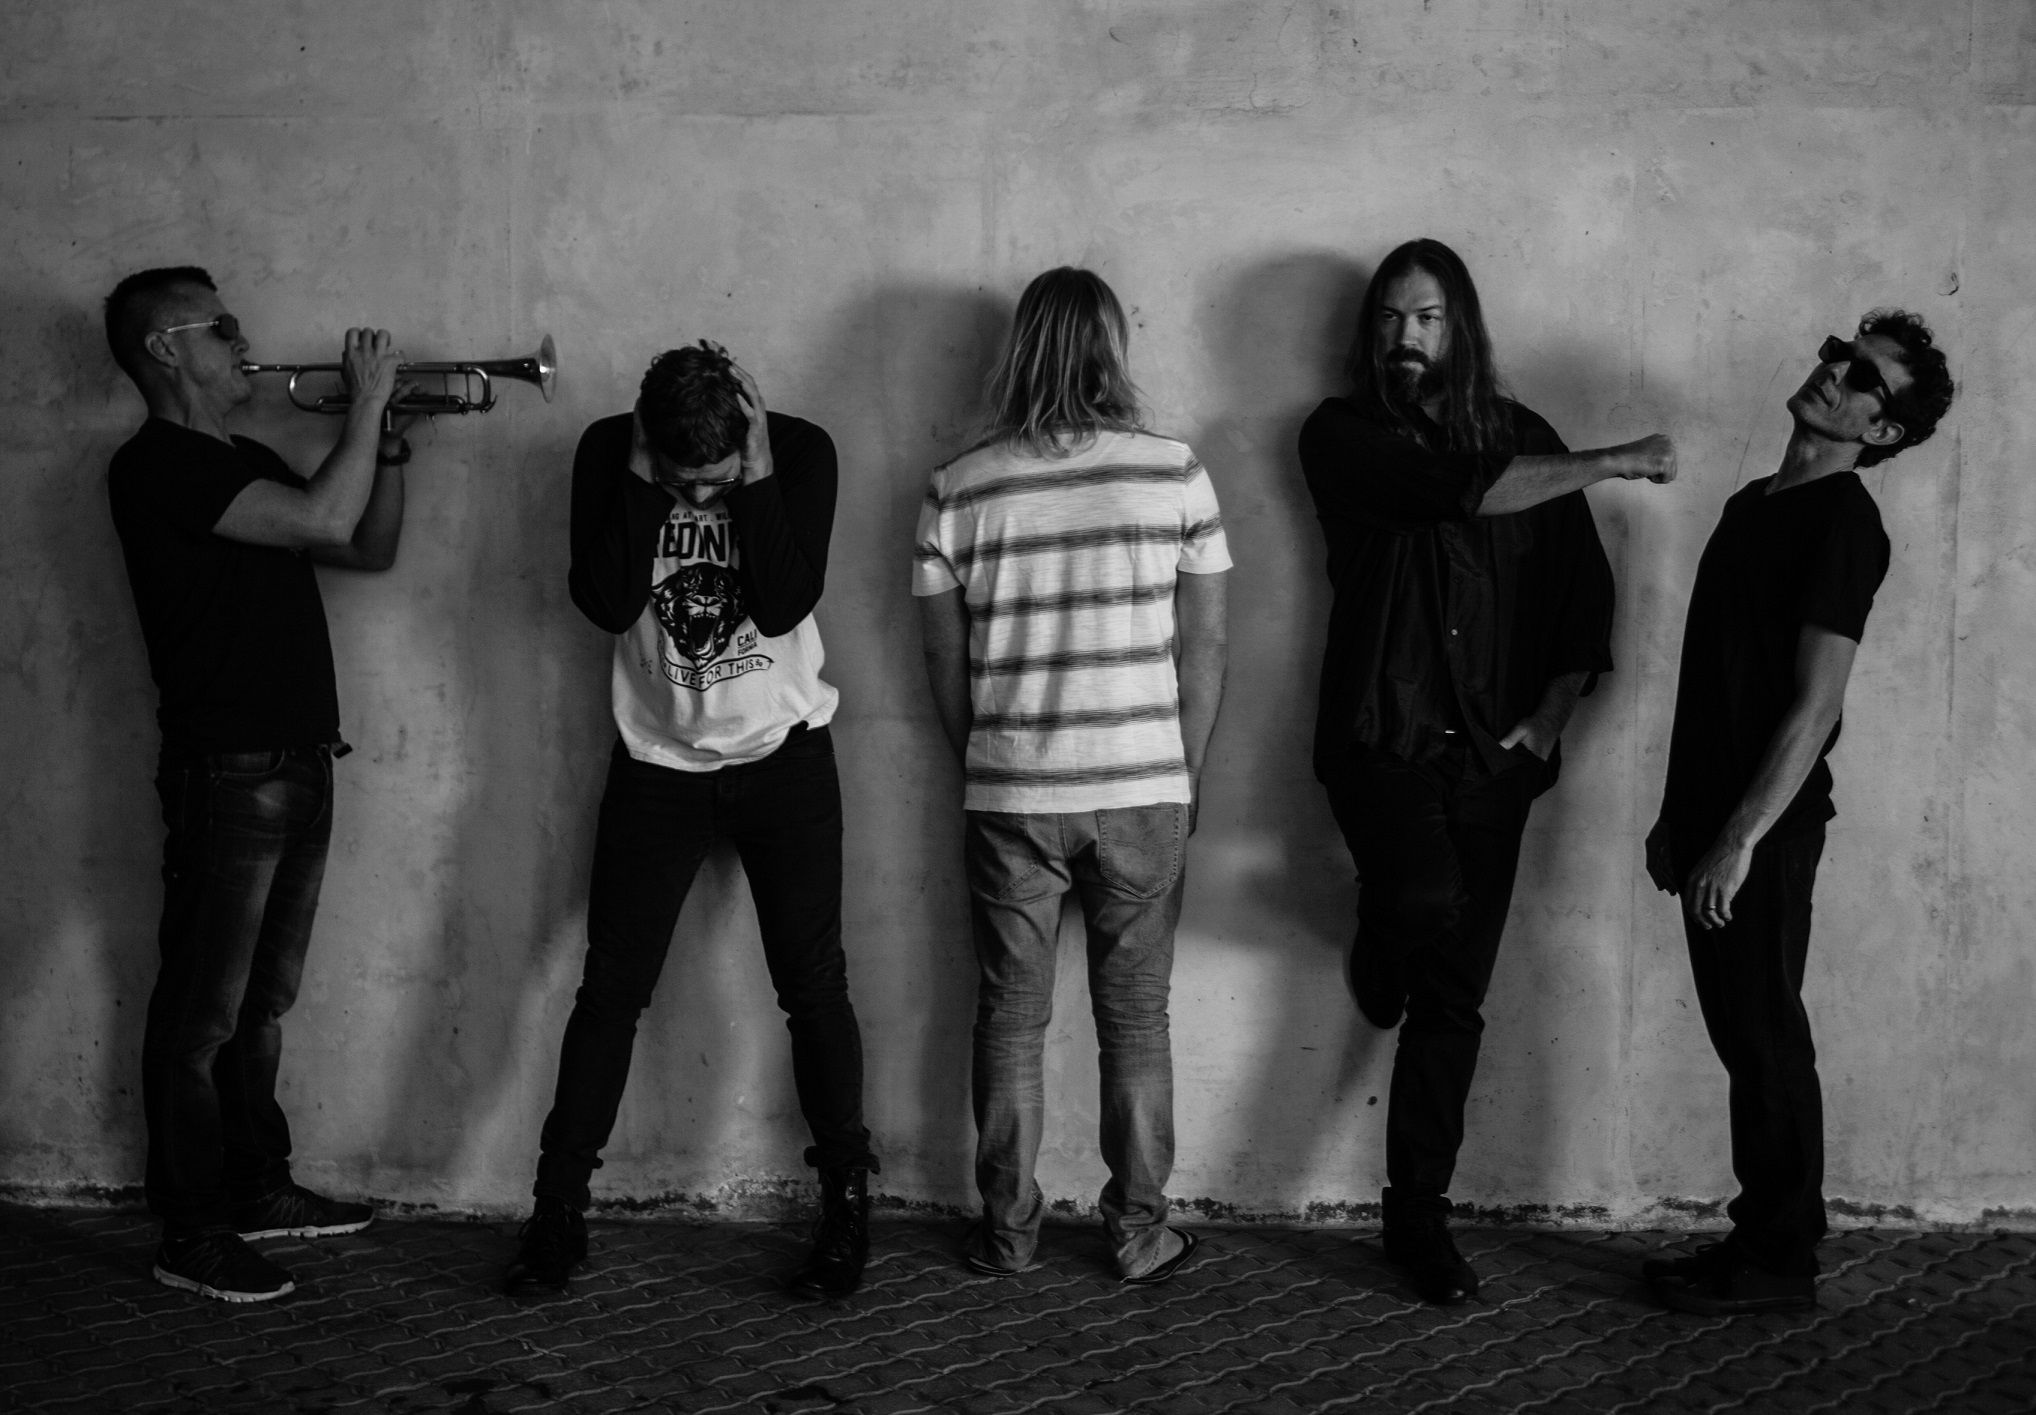 Springbok Nude Girls Return With New Music And Tour photo